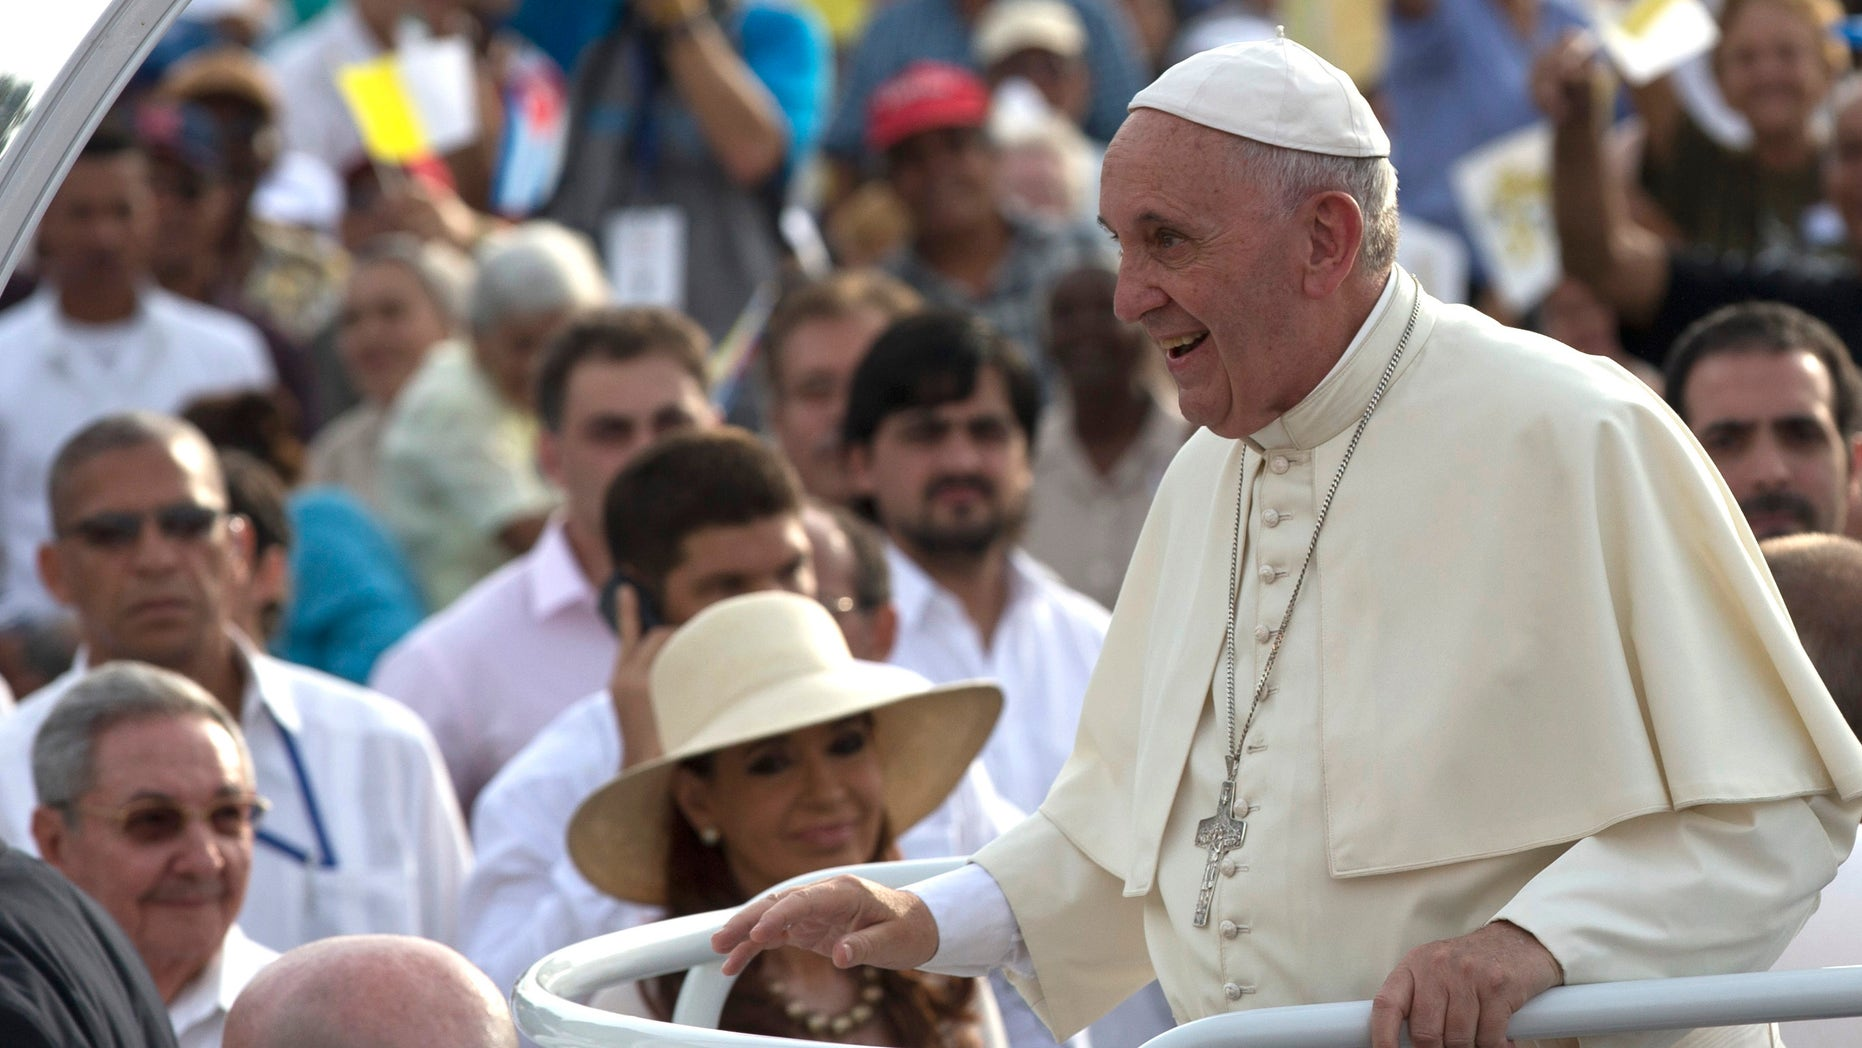 Cuba's President Raul Castro, behind left, and Argentina's President Christina Fernandez, in hat, watch Pope Francis arrive for Mass at Revolution Plaza in Havana, Cuba, Sunday, Sept. 20, 2015.  Pope Francis opens his first full day in Cuba on Sunday with what normally would be the culminating highlight of a papal visit: Mass before hundreds of thousands of people in Havana's Revolution Plaza. (Ismael Francisco/Cubadebate Via AP)